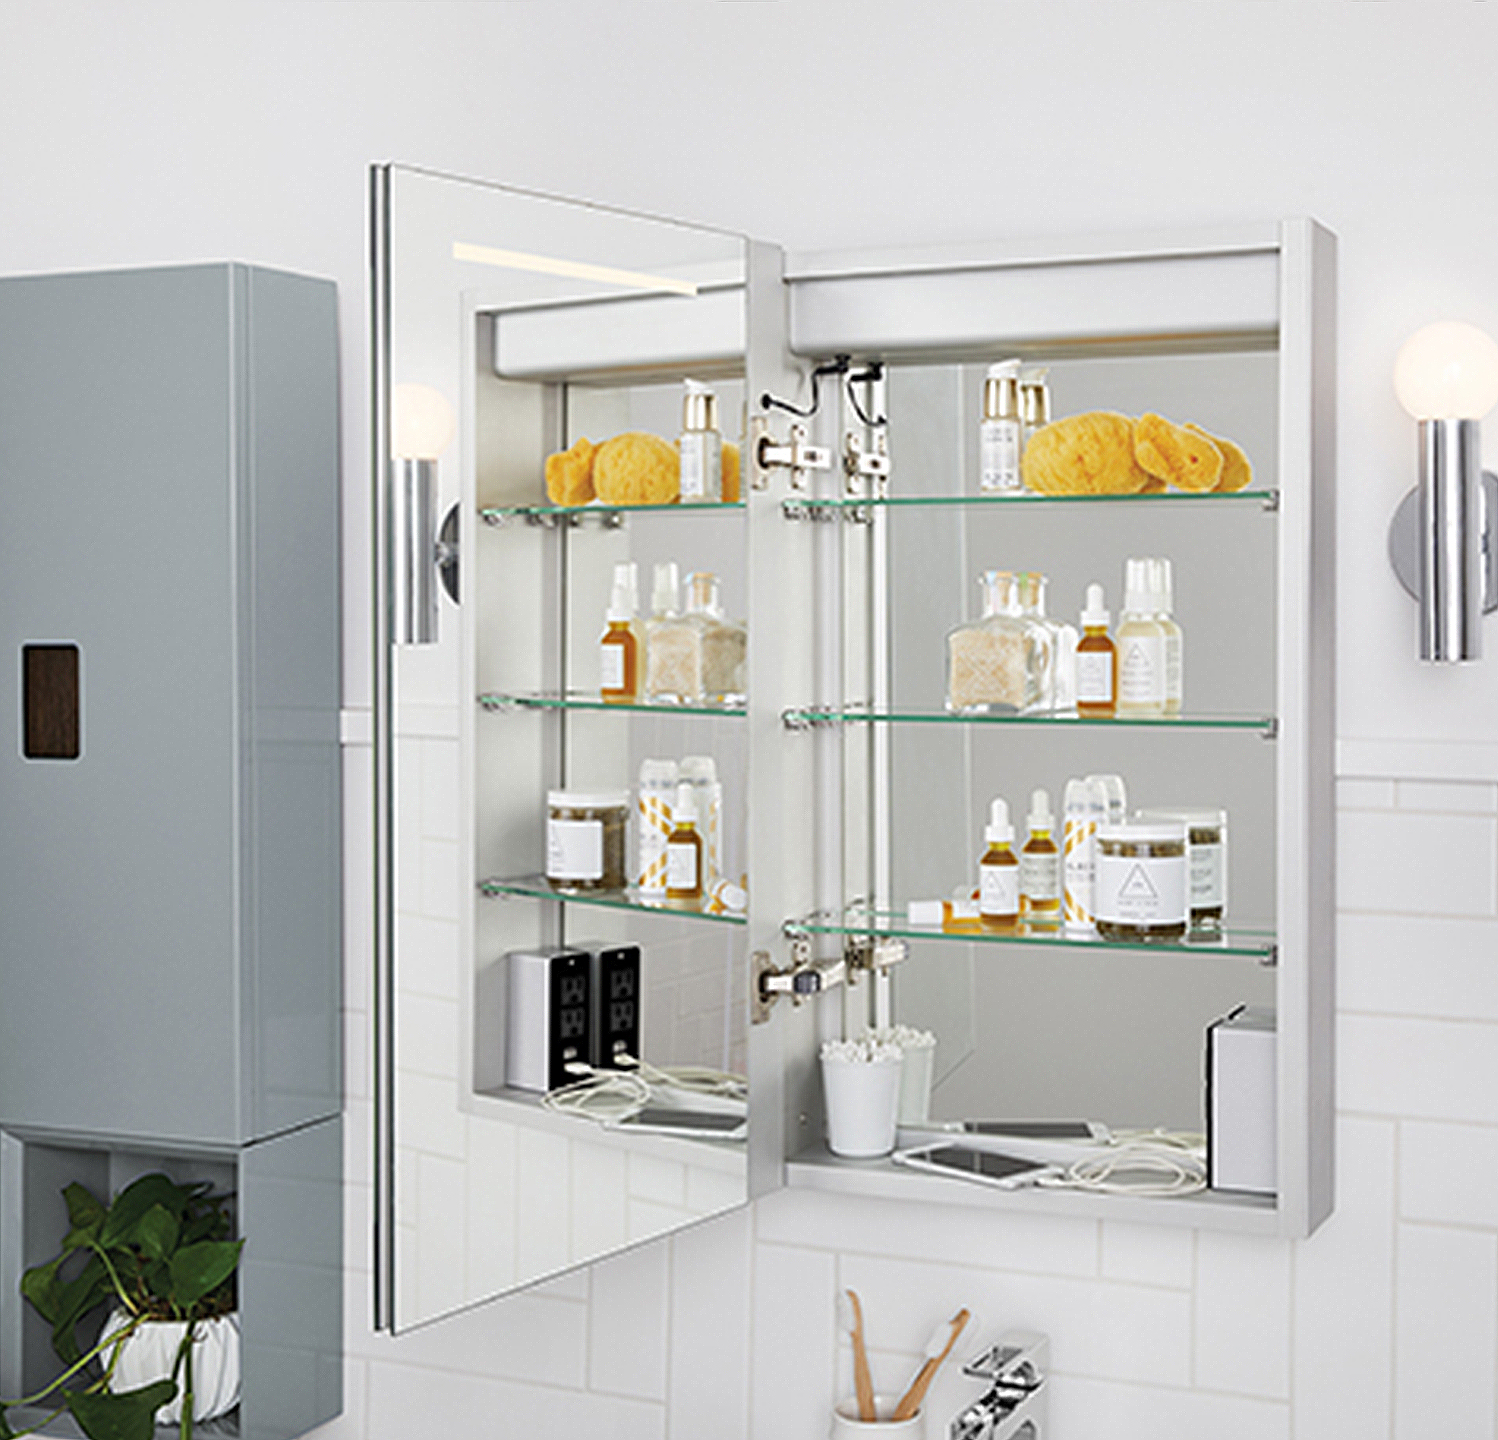 It may also be paired with one of Ronbow's LED mirrors, such as Marquee or Radiance.